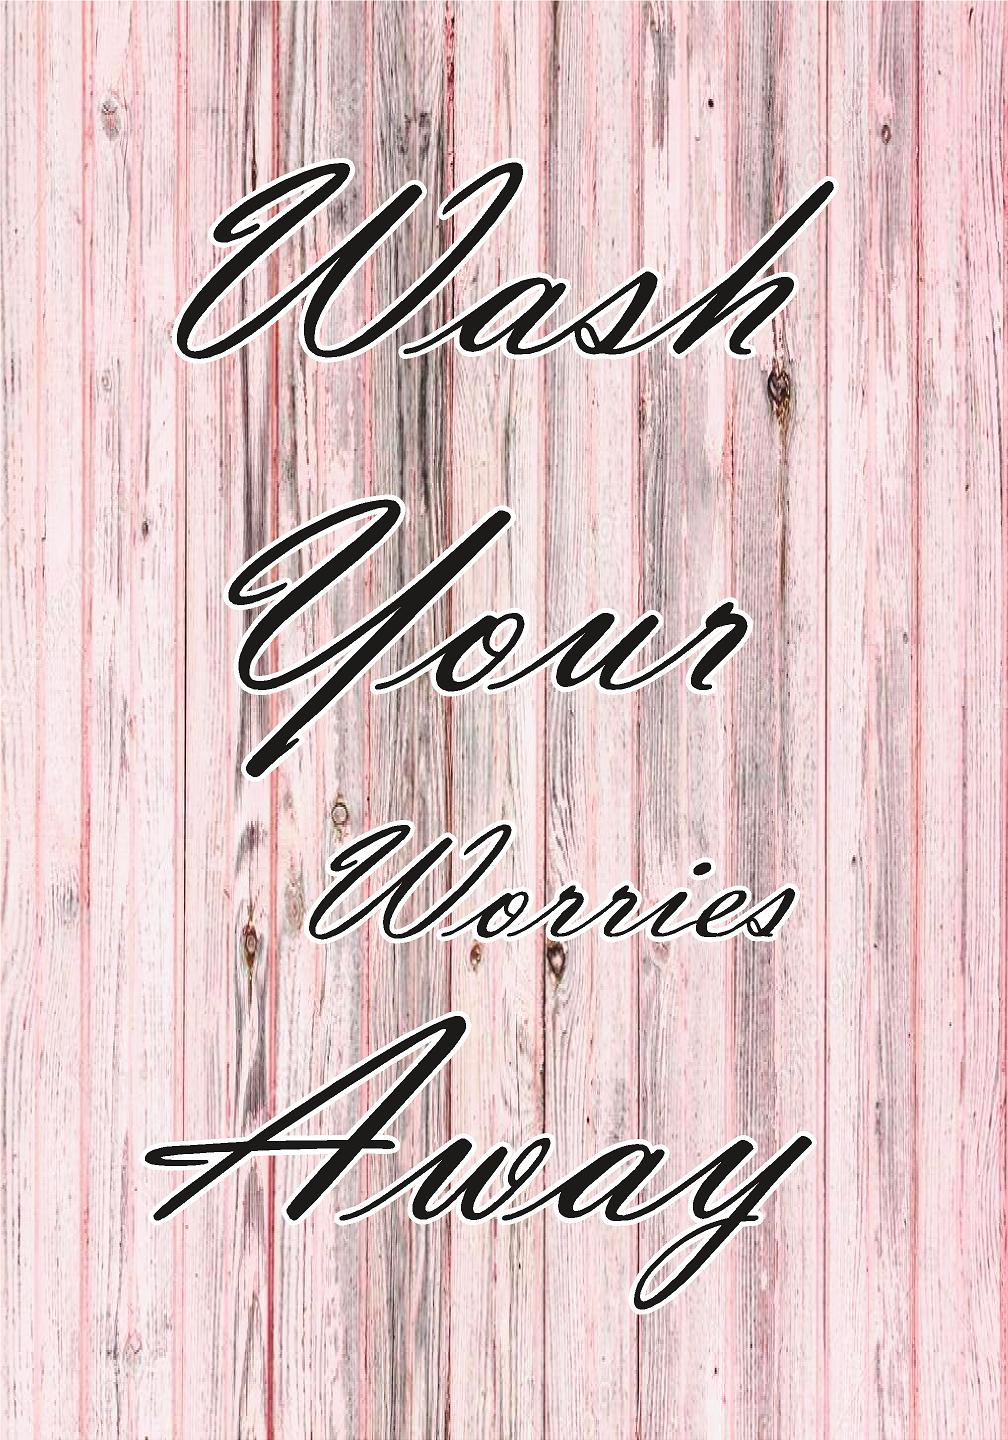 Canvas Wrap-Wash your worries